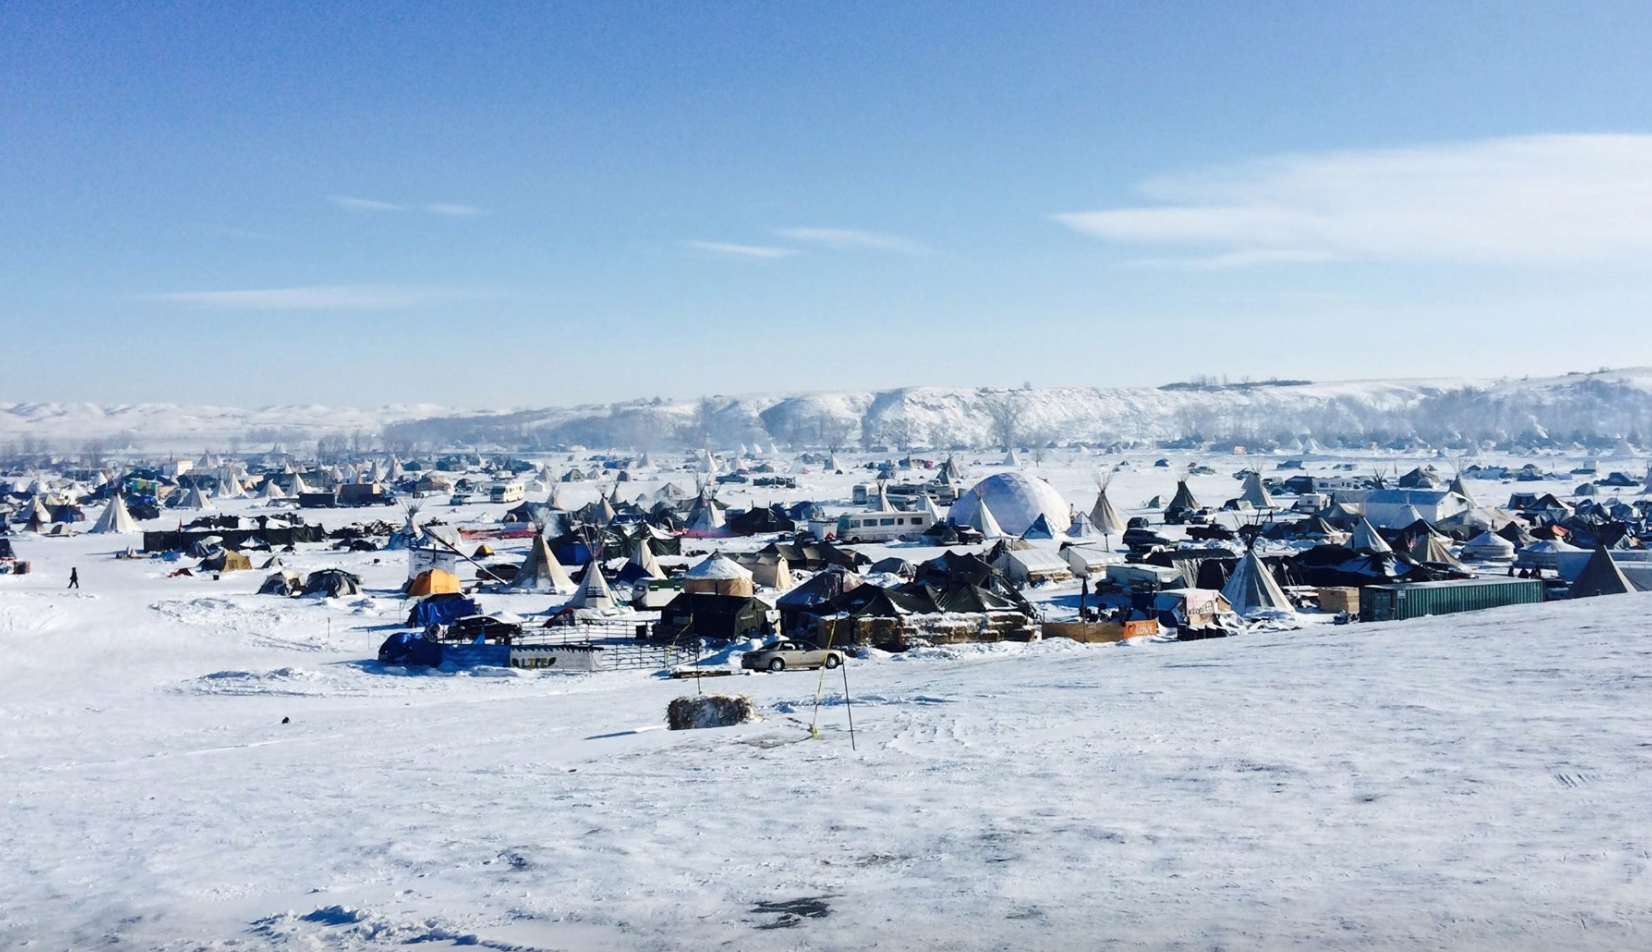 Oceti Sakowin Camp, Standing Rock, North Dakota, December 2016.